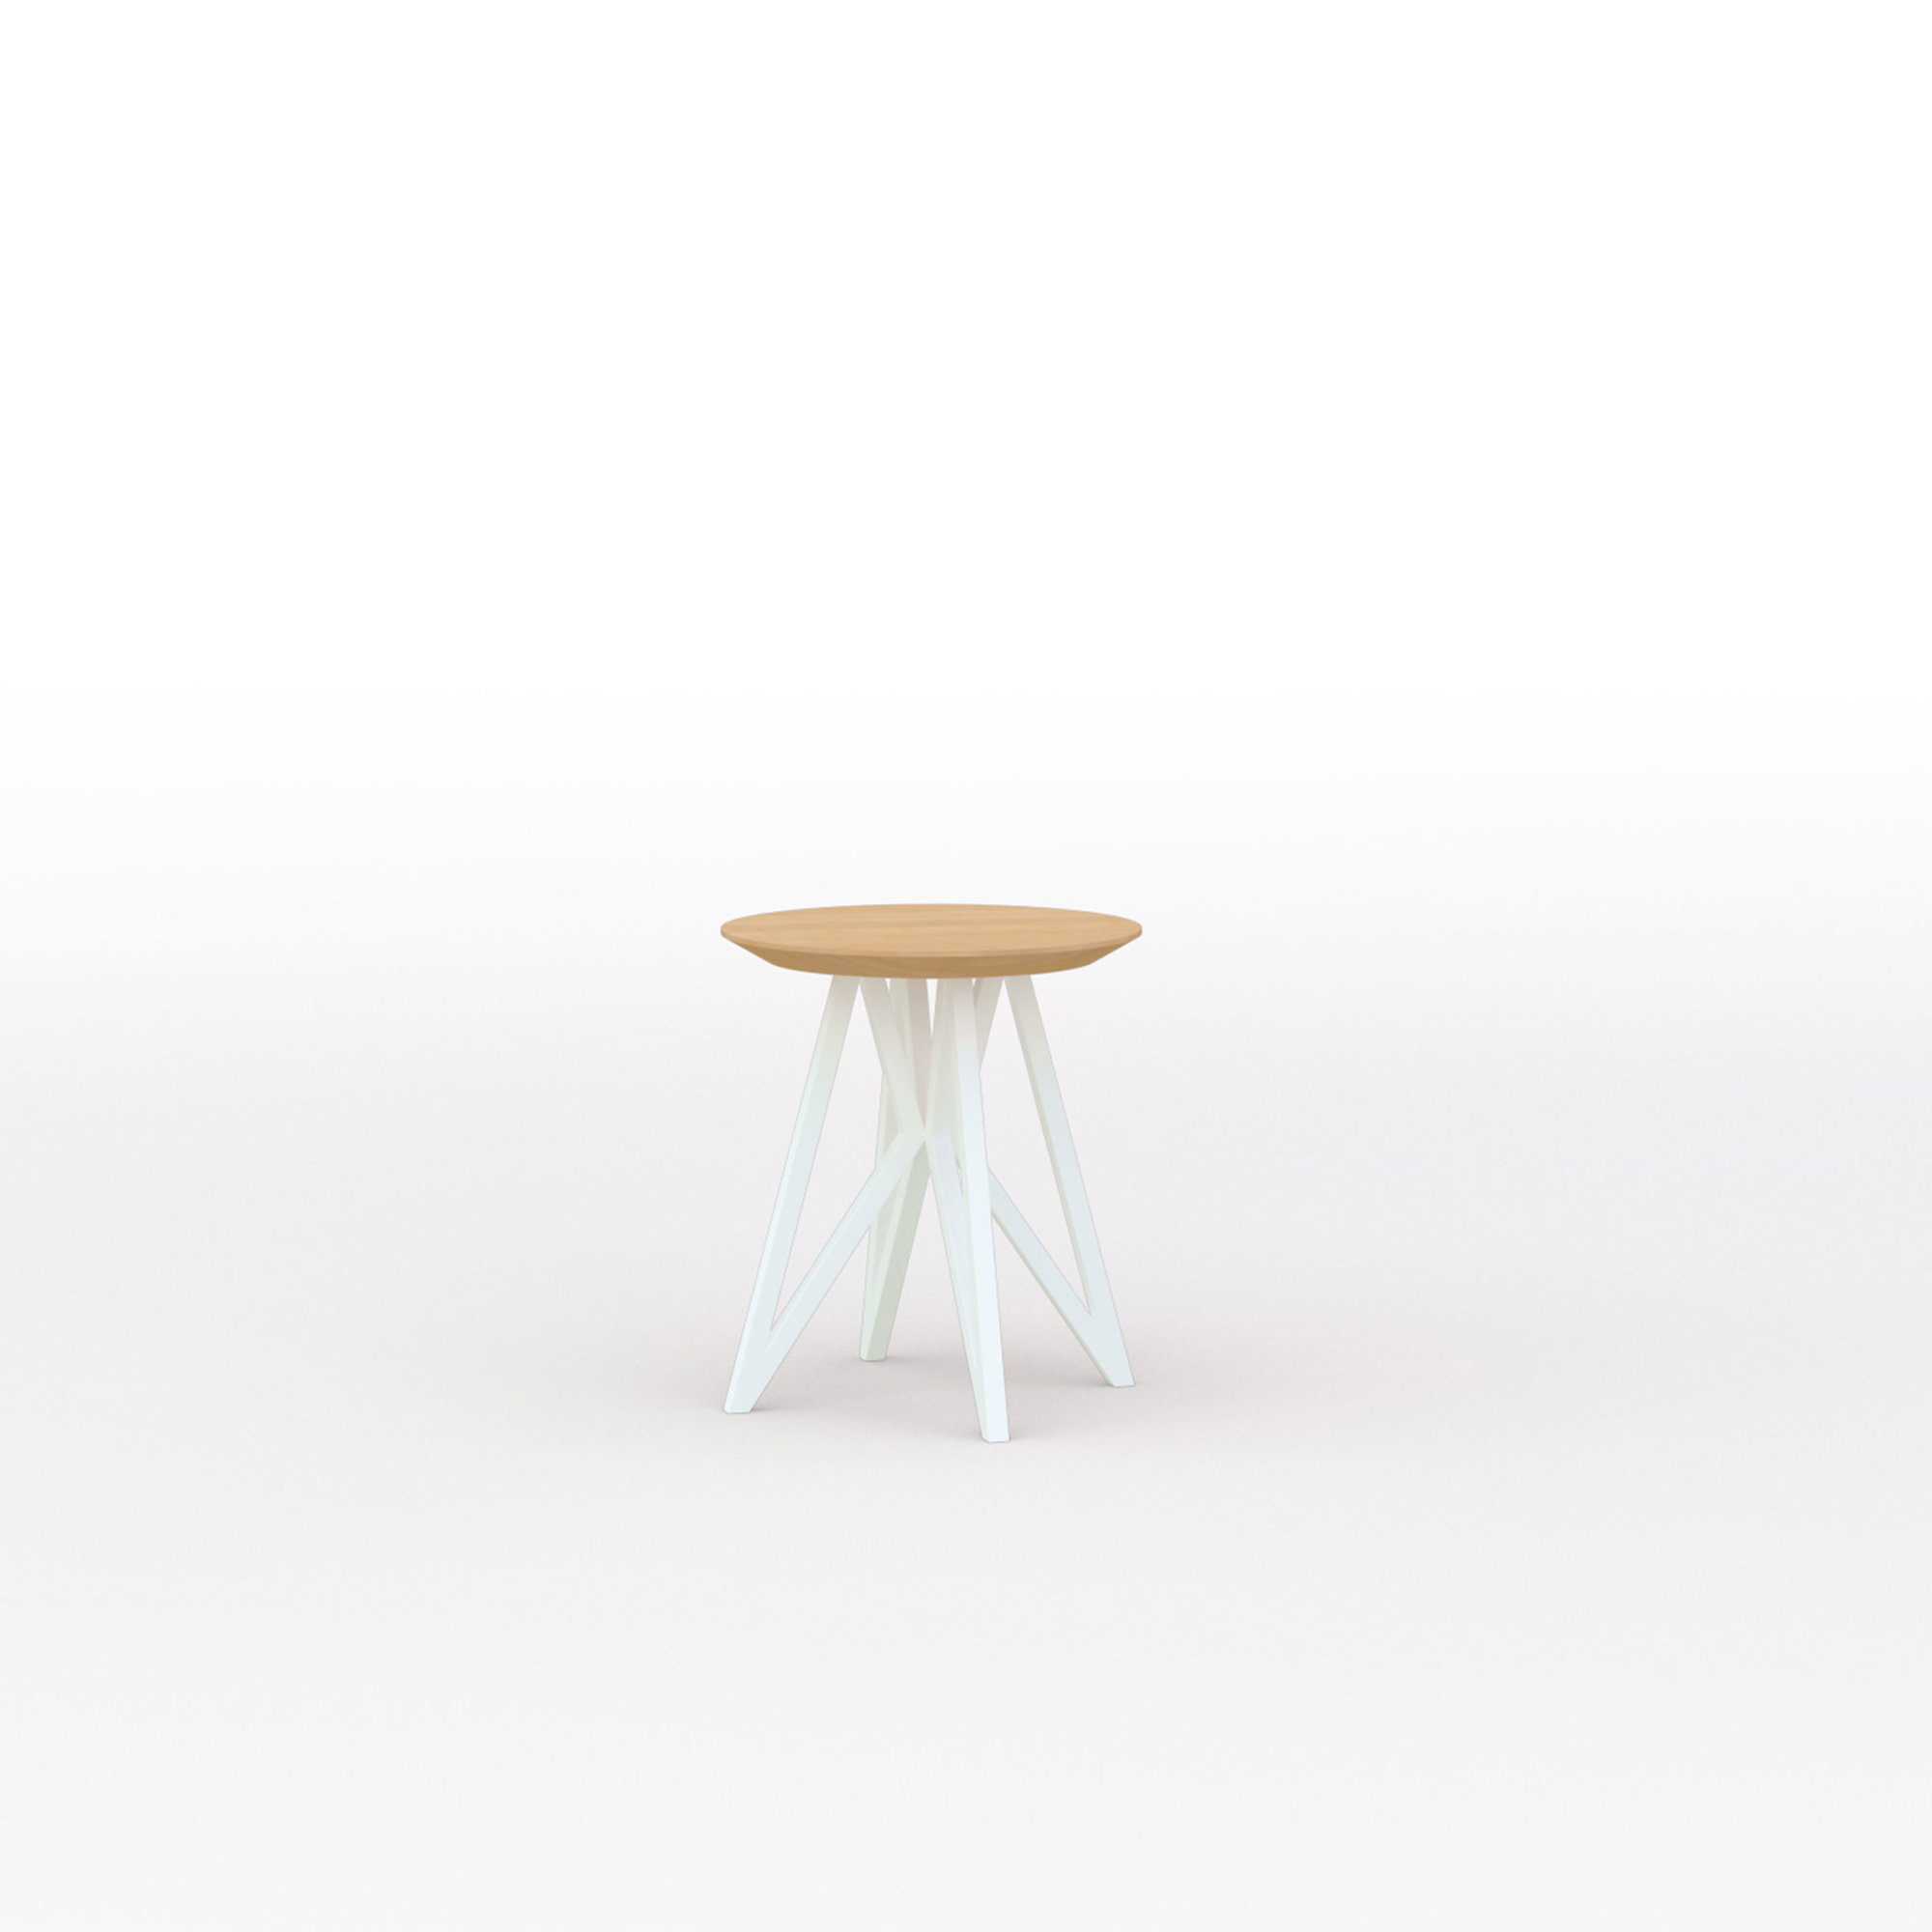 Design salontafel | Butterfly Quadpod Coffee Table White | Oak hardwax oil natural 3062 | Studio HENK | Listing_image